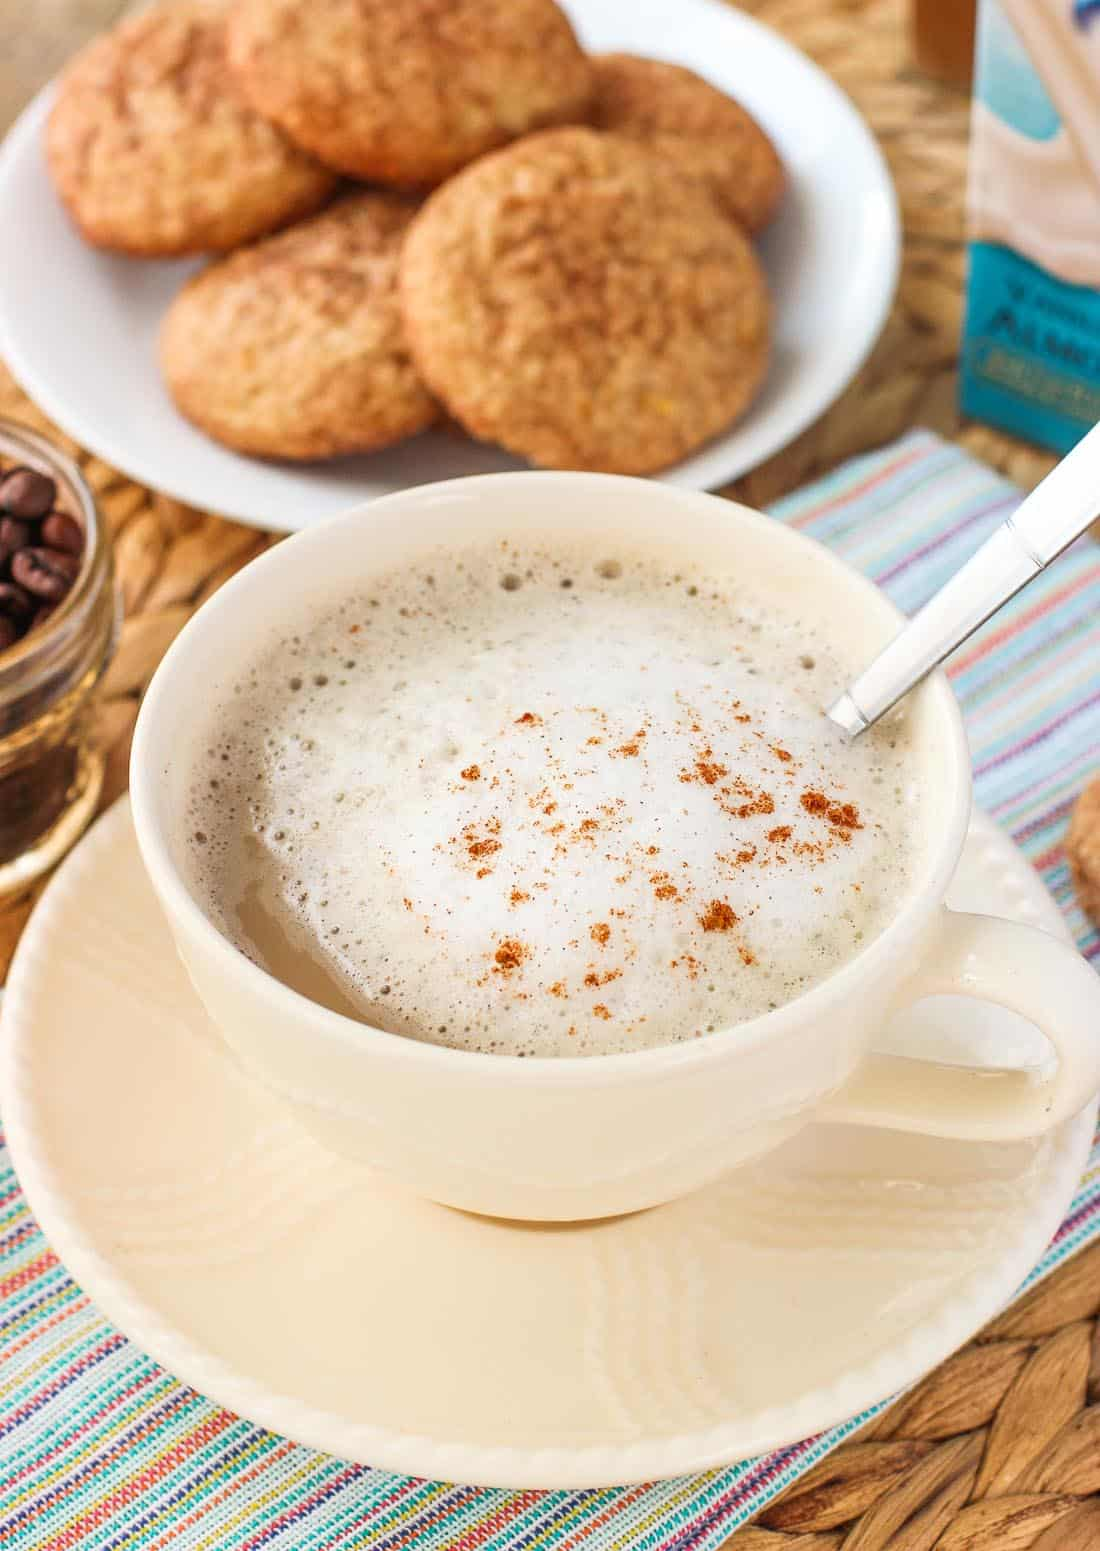 A latte in a wide mug with foamed milk and cinnamon to garnish. In the background is a plate of snickerdoodle cookies